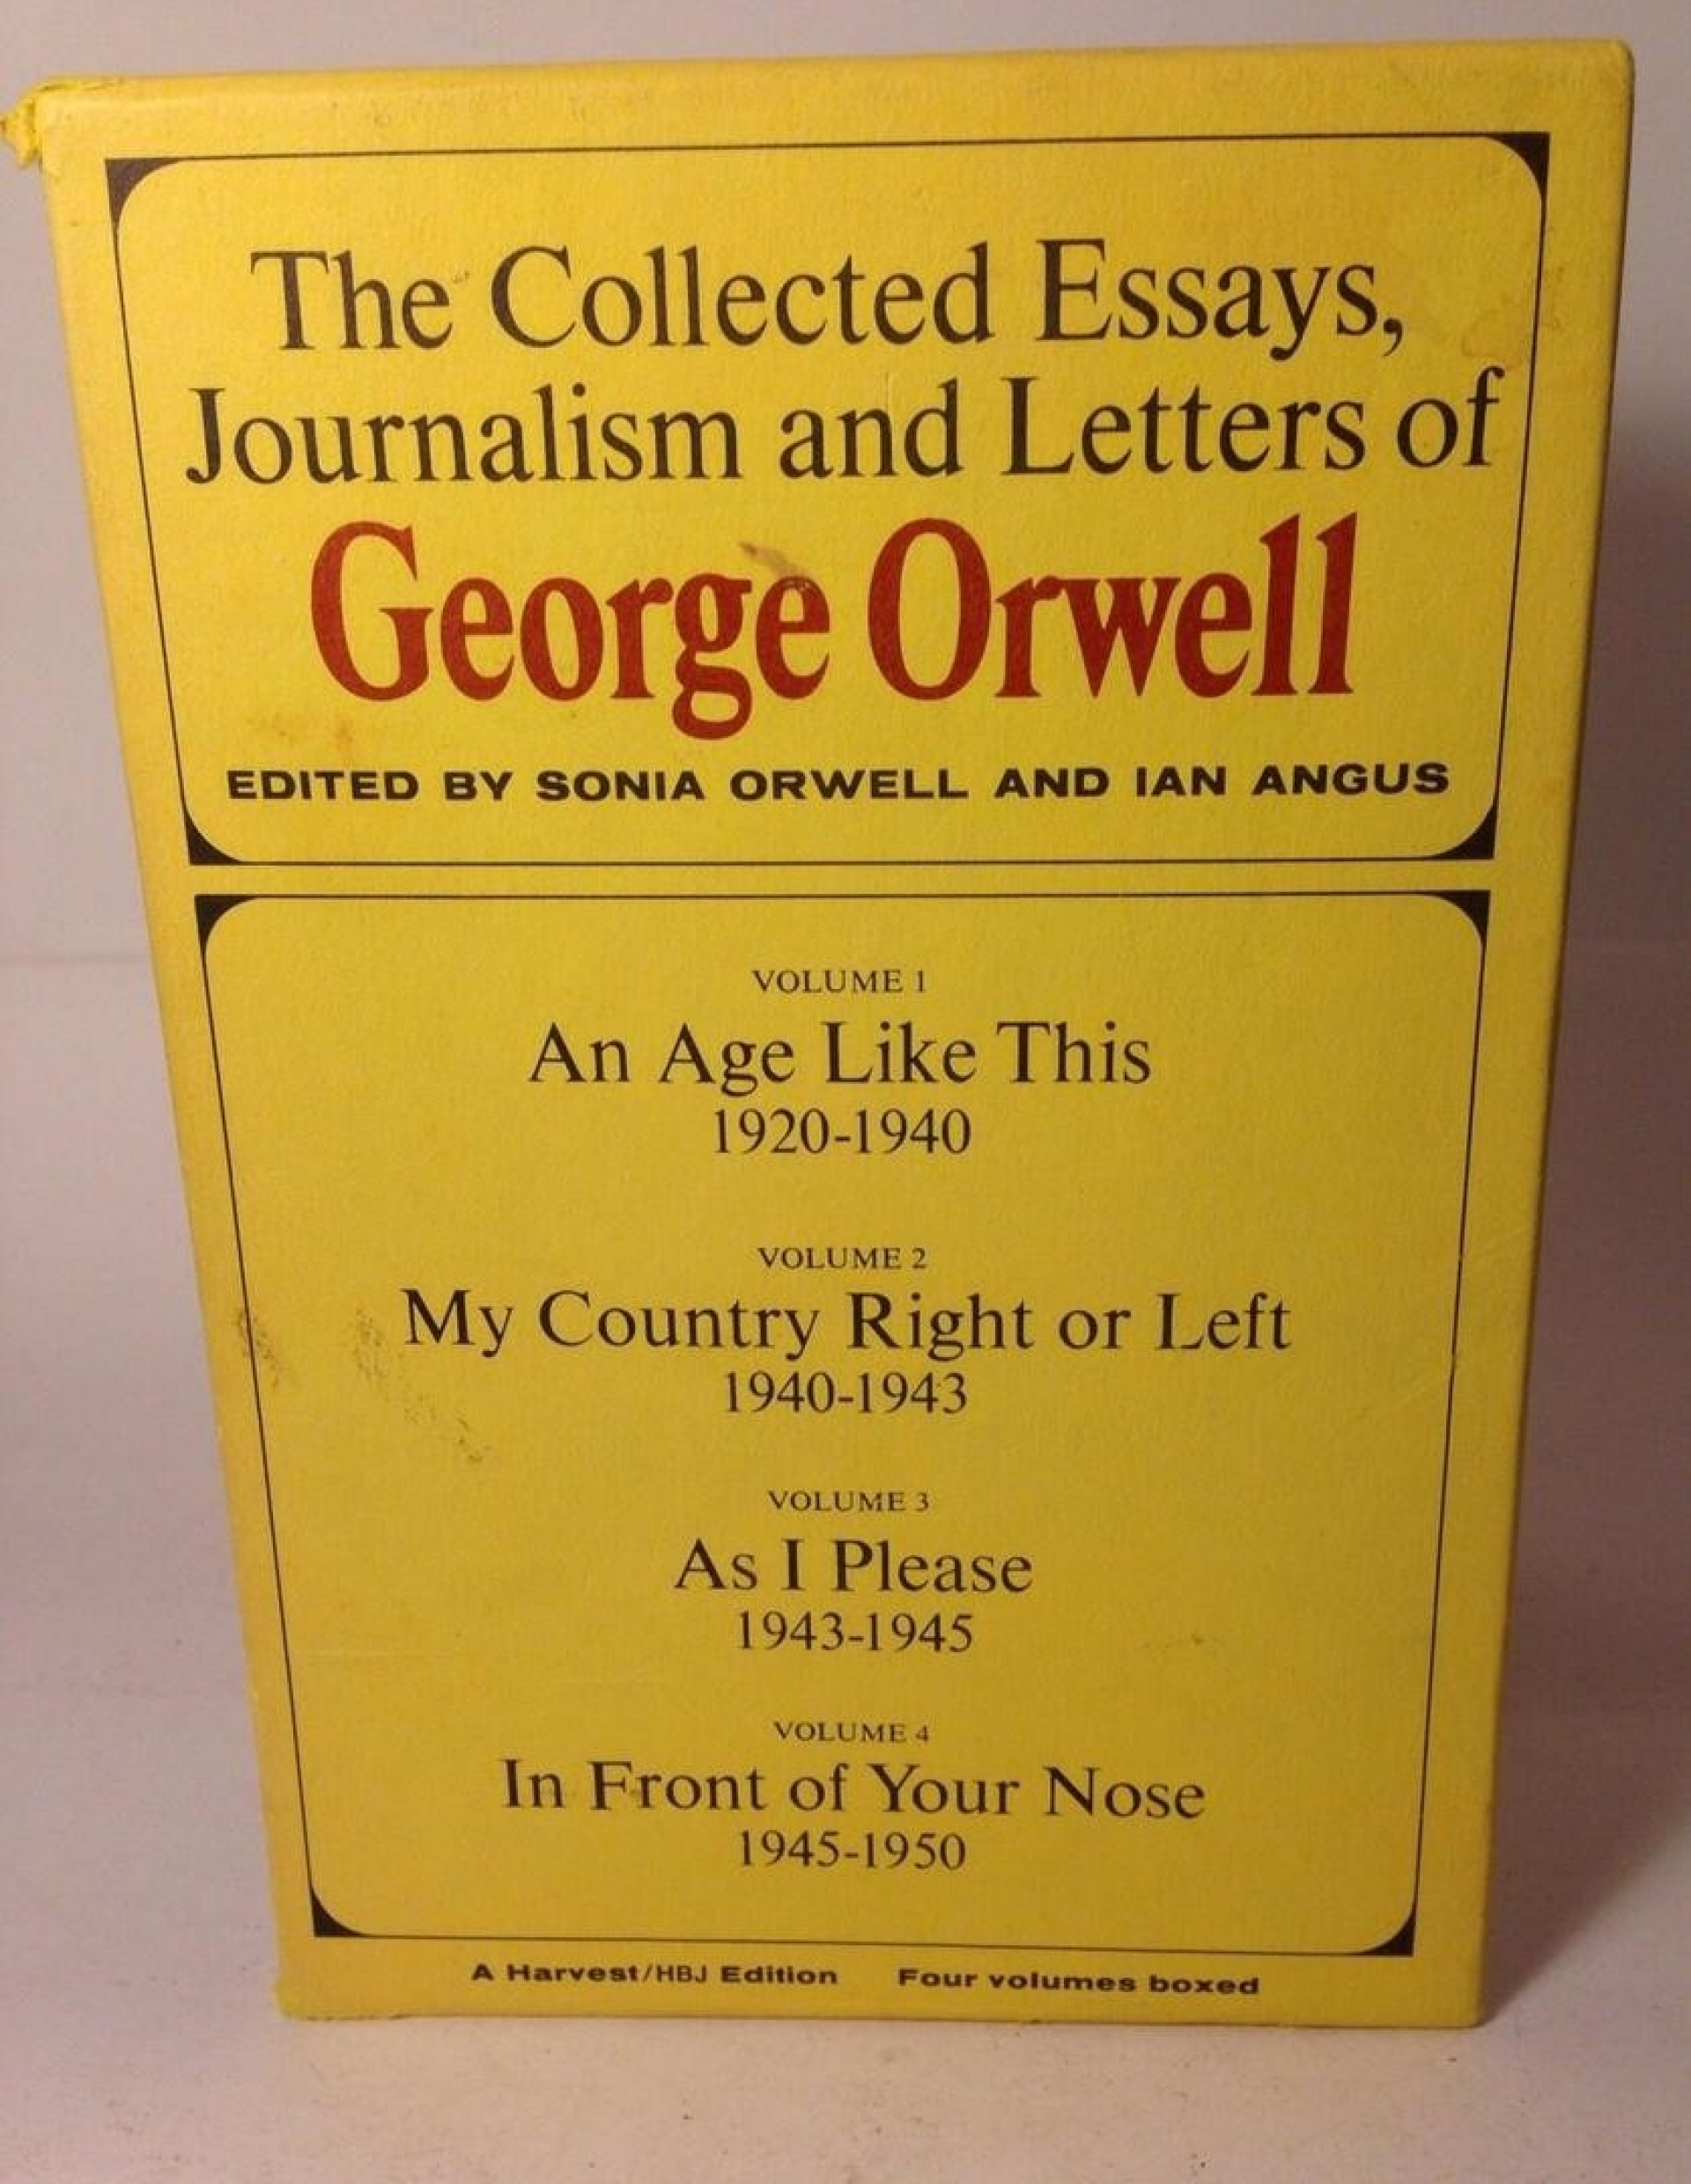 023 Orwell Essays Essay Example Collected Journalism Letters 1 D3543dfe52fc568d792dbe662f9da250 Singular Amazon Pdf Epub 1920